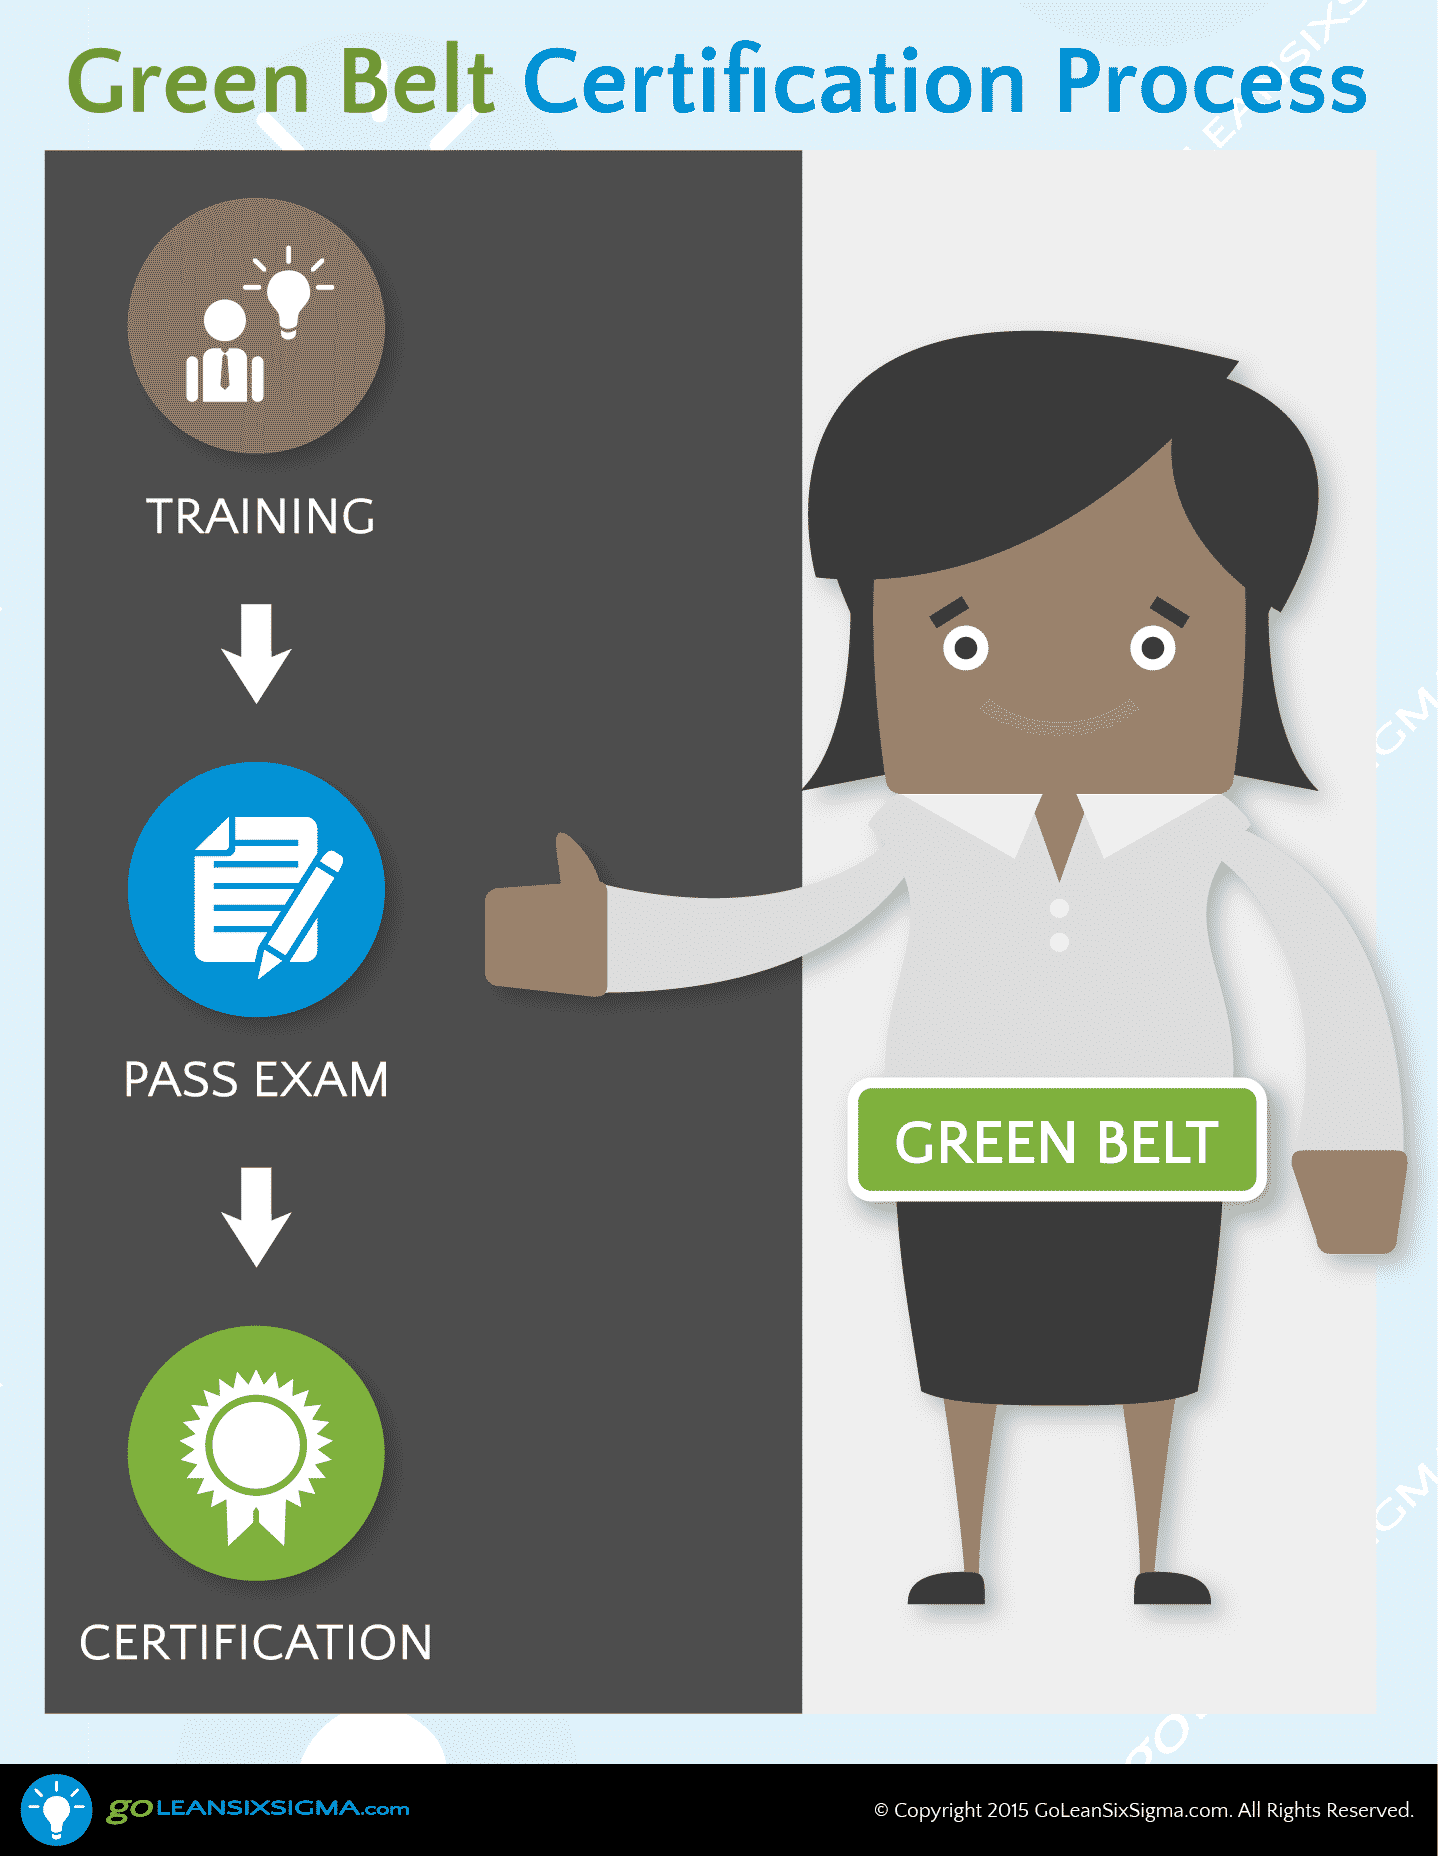 Green Belt Certification Process